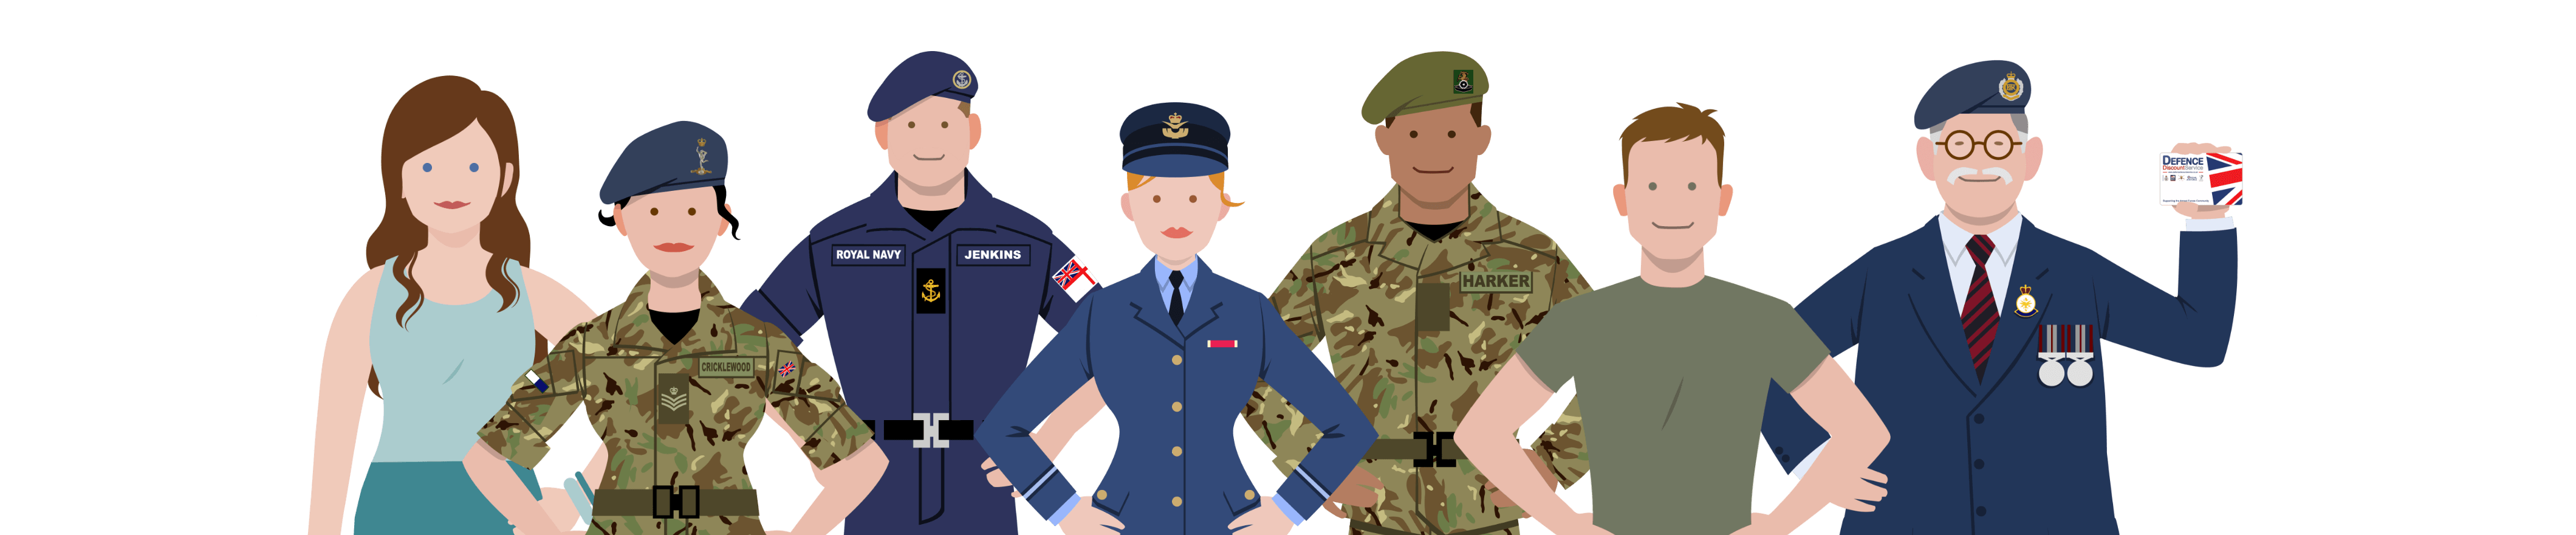 Defence Discount Services characters